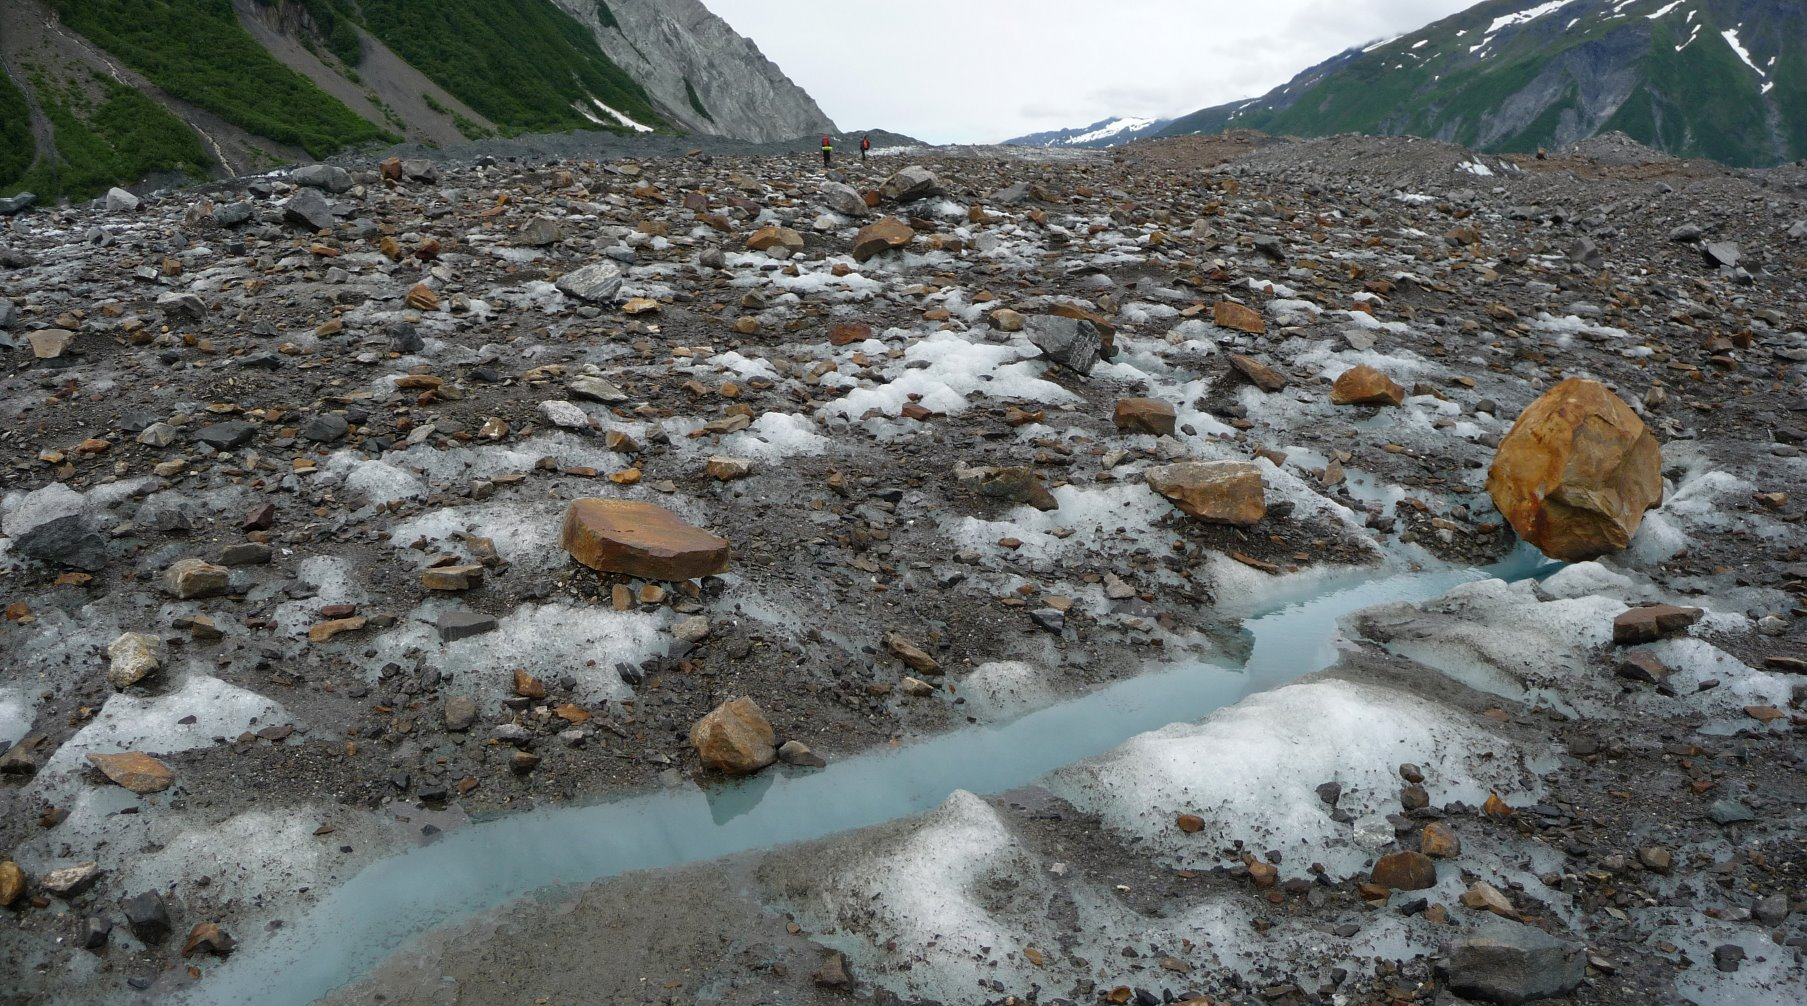 Lituya Glacier covered in a layer of rock.